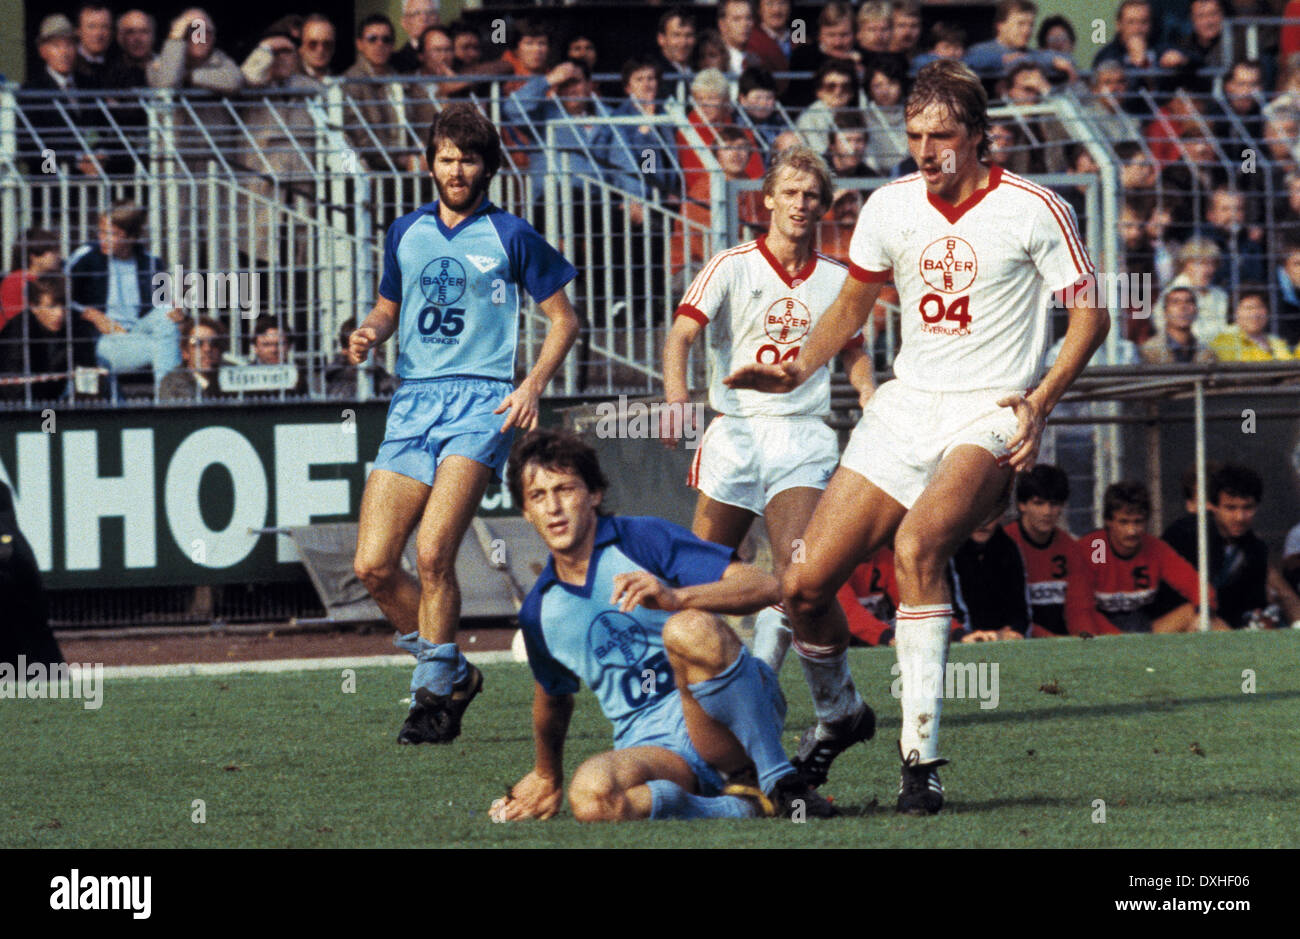 football, Bundesliga, 1983/1984, Grotenburg Stadium, FC Bayer 05 Uerdingen versus Bayer 04 Leverkusen 2:1, scene of the match, f.l.t.r. Friedhelm Funkel (Uerdingen), Franz Raschid (Uerdingen), Frank Saborowski (Leverkusen), Ulrich Bittorf (Leverkusen) - Stock Image